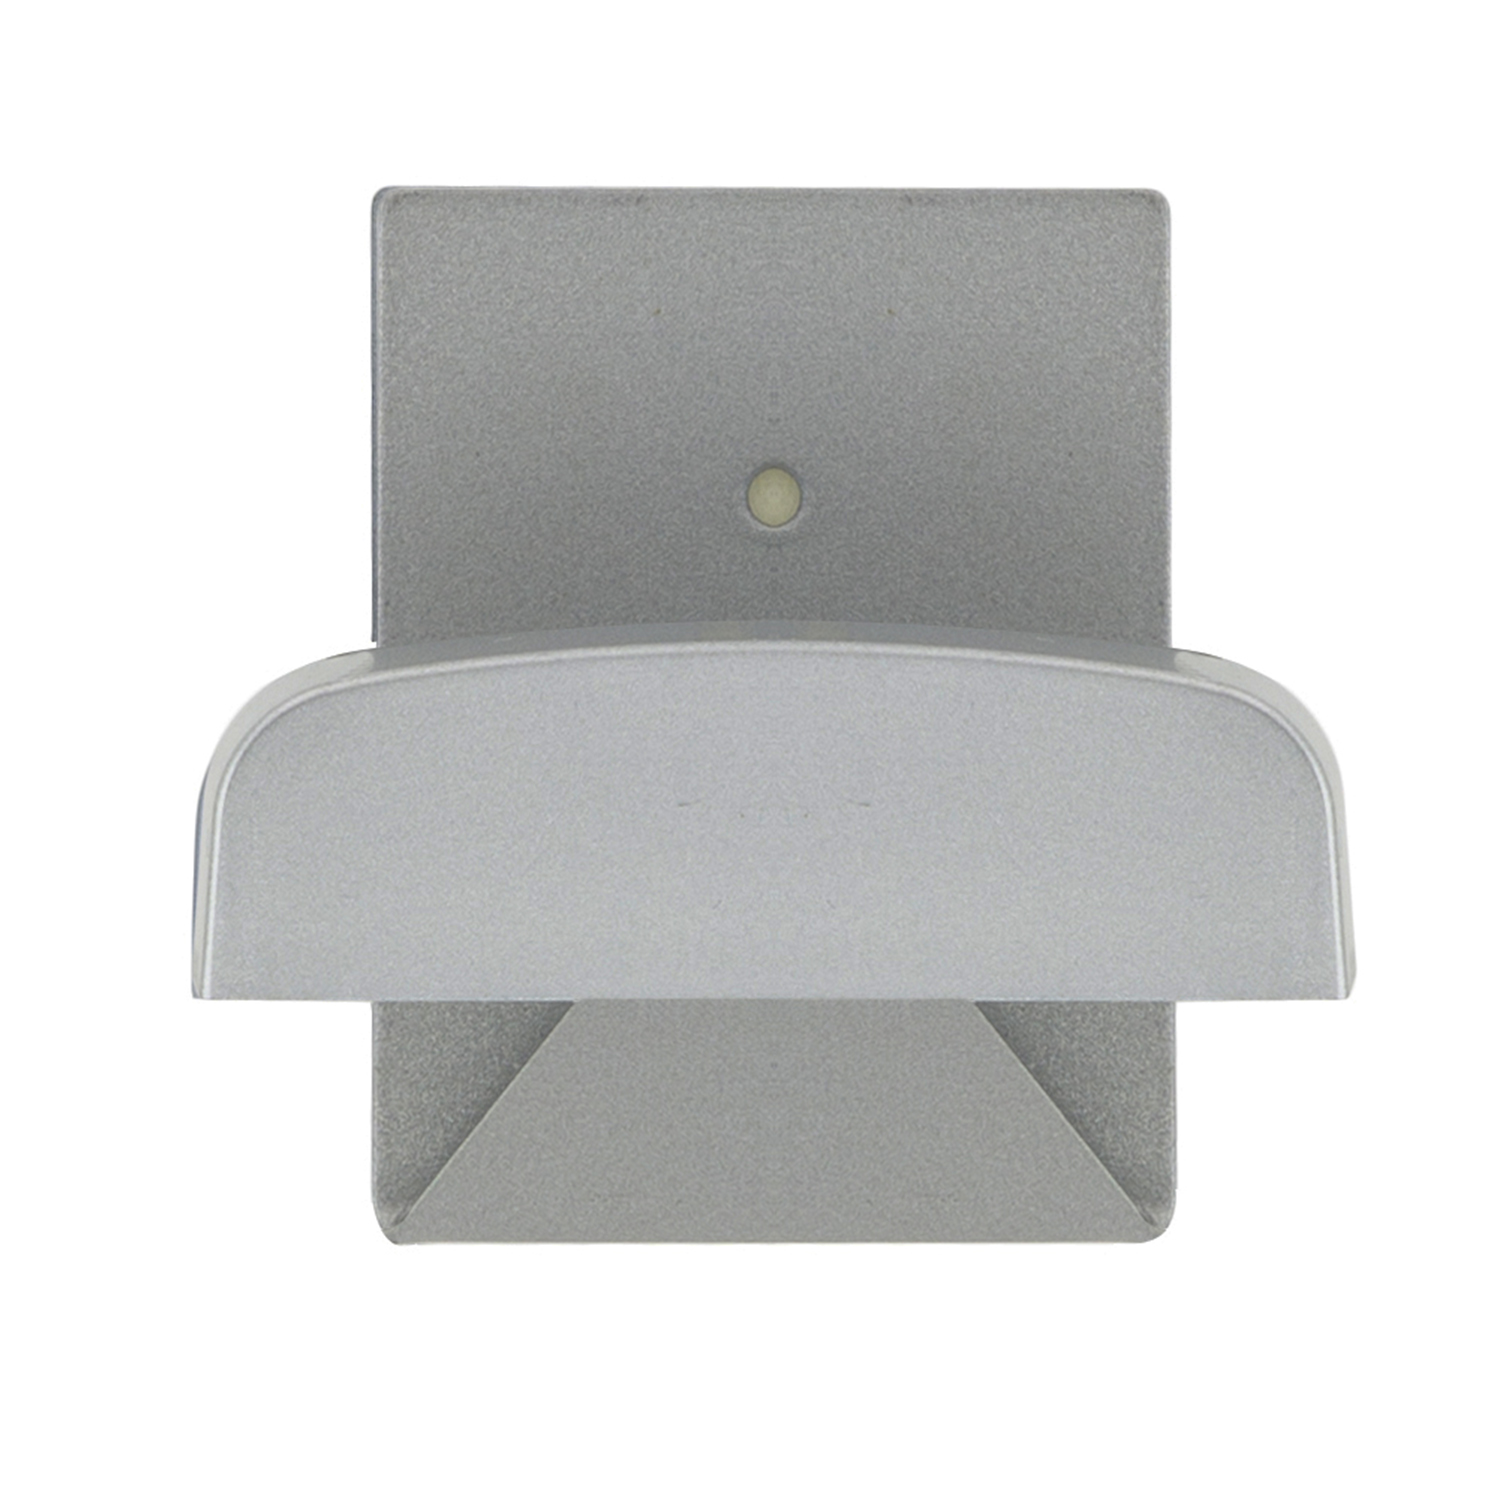 Colgador Percha Adhesivo Acero Inoxidable Color Gris